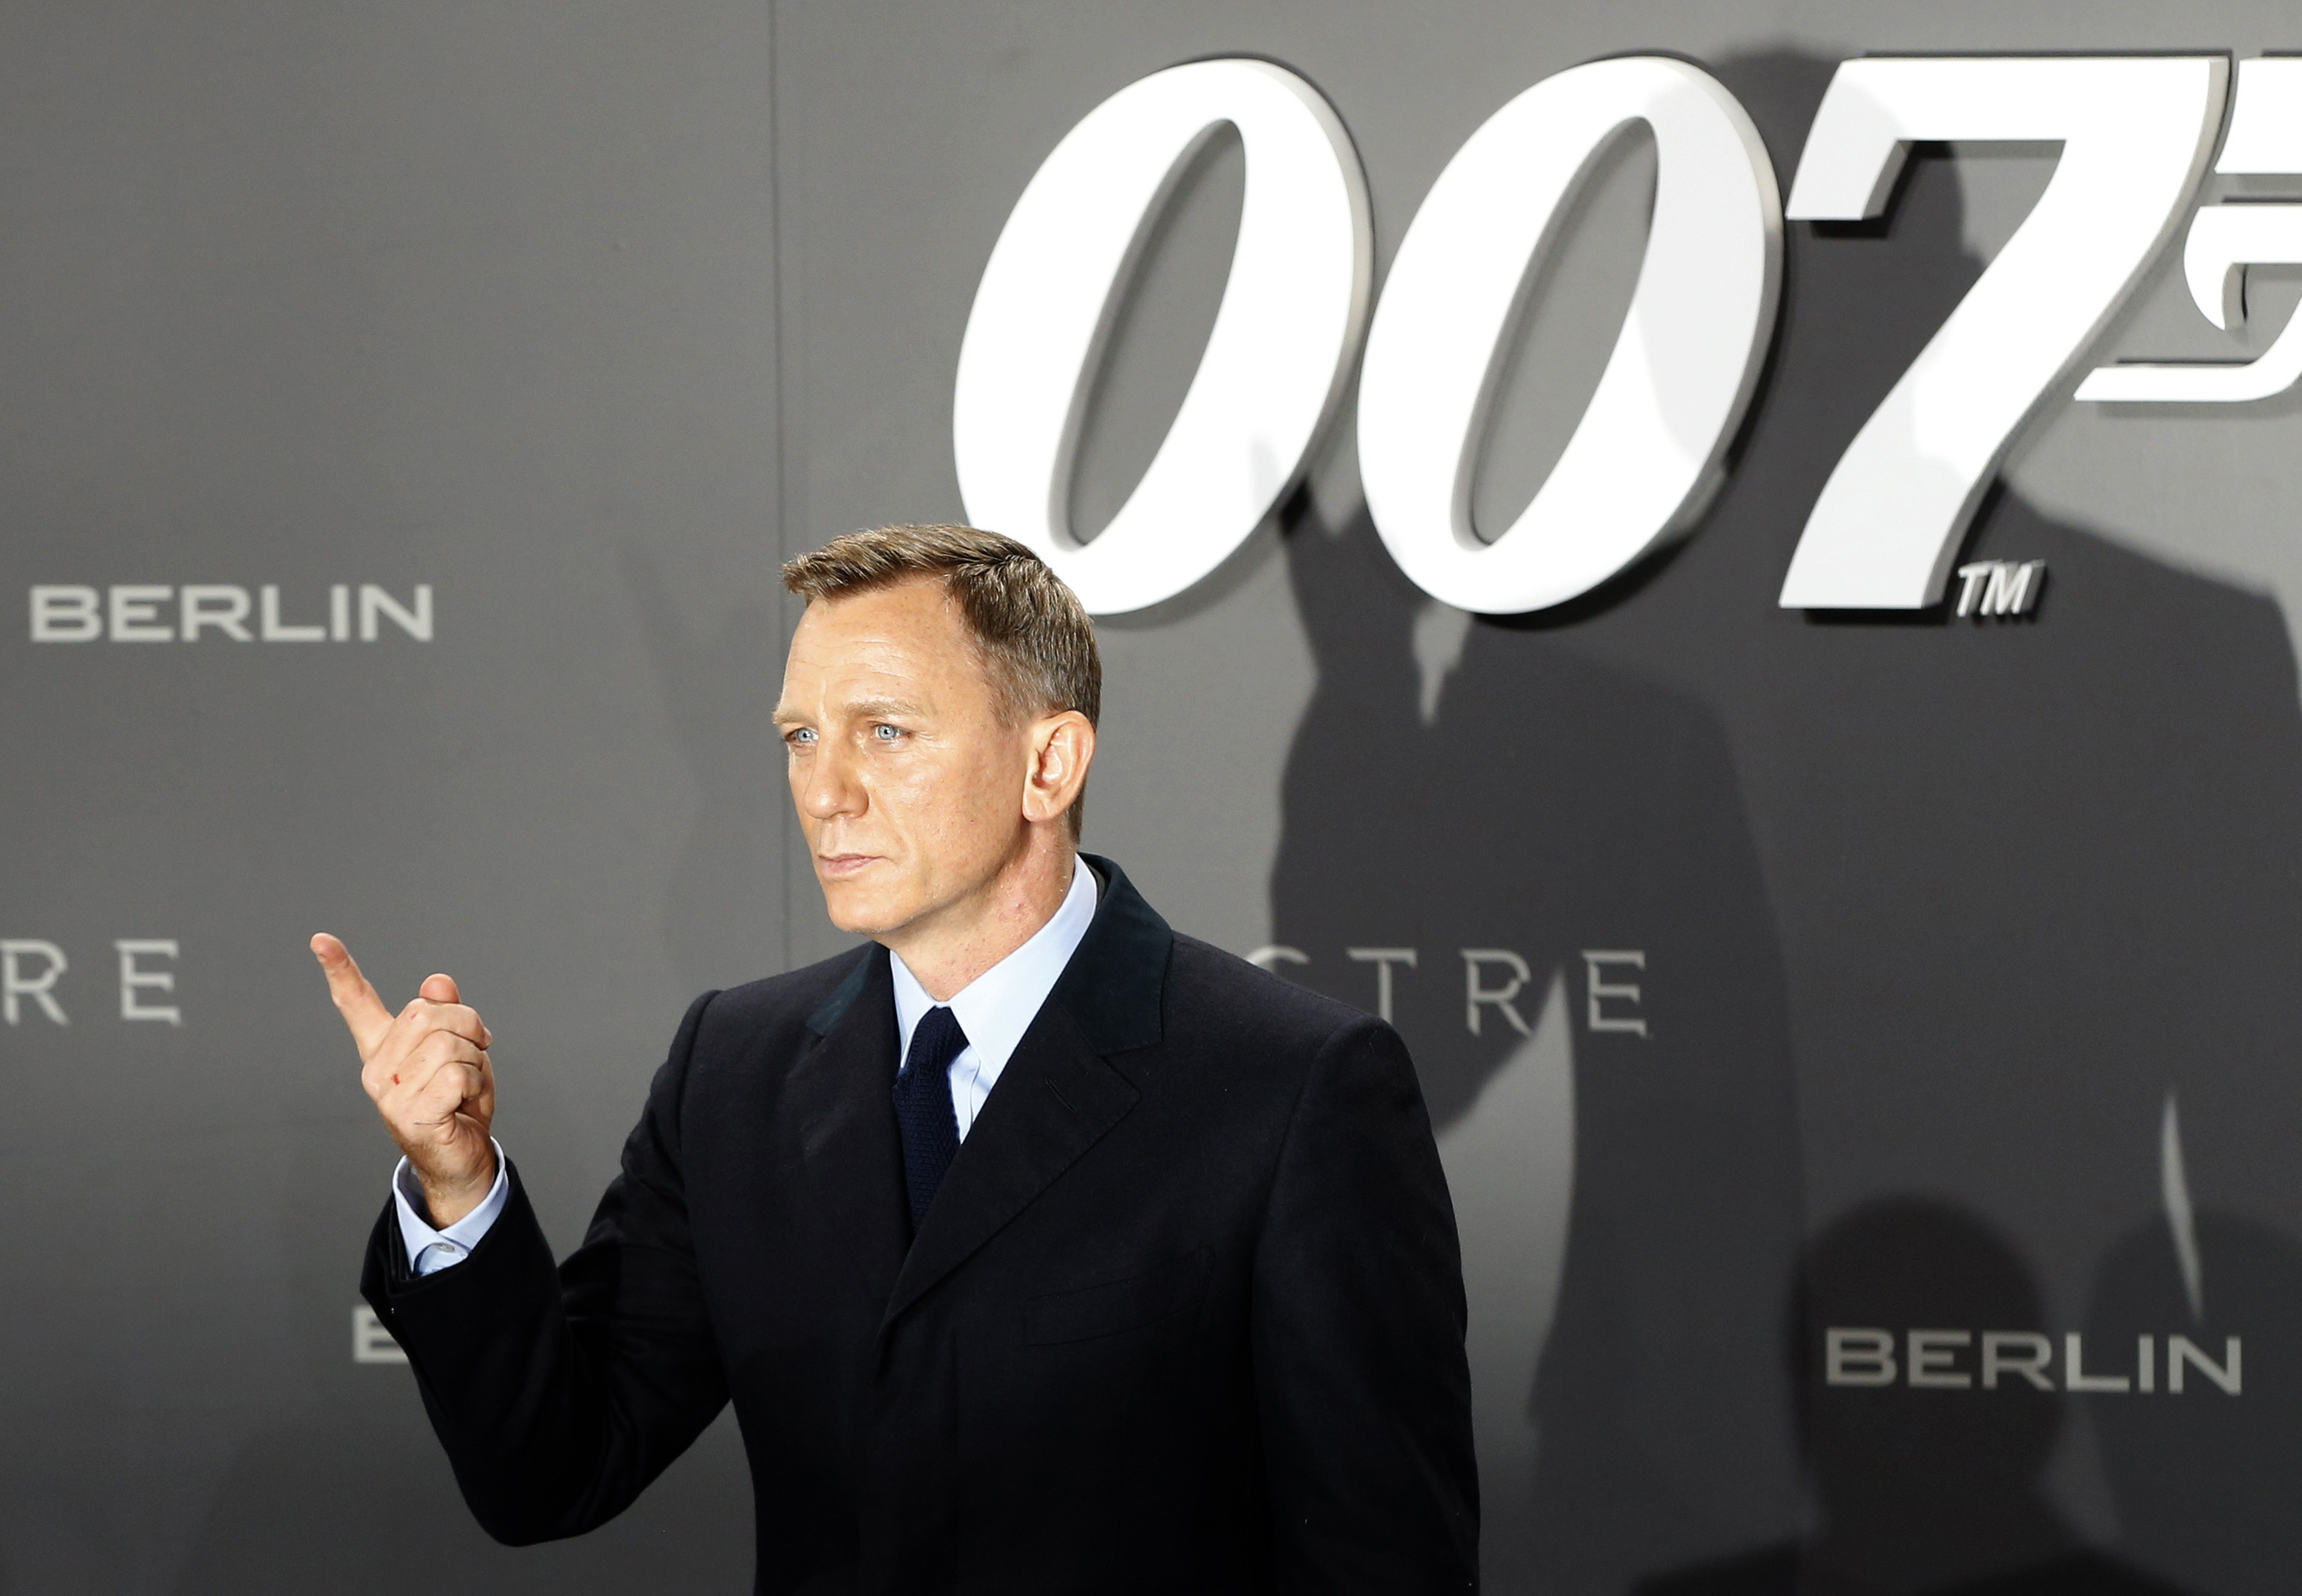 Actor Daniel Craig poses for photographers on the red carpet at the premiere of a James Bond film.